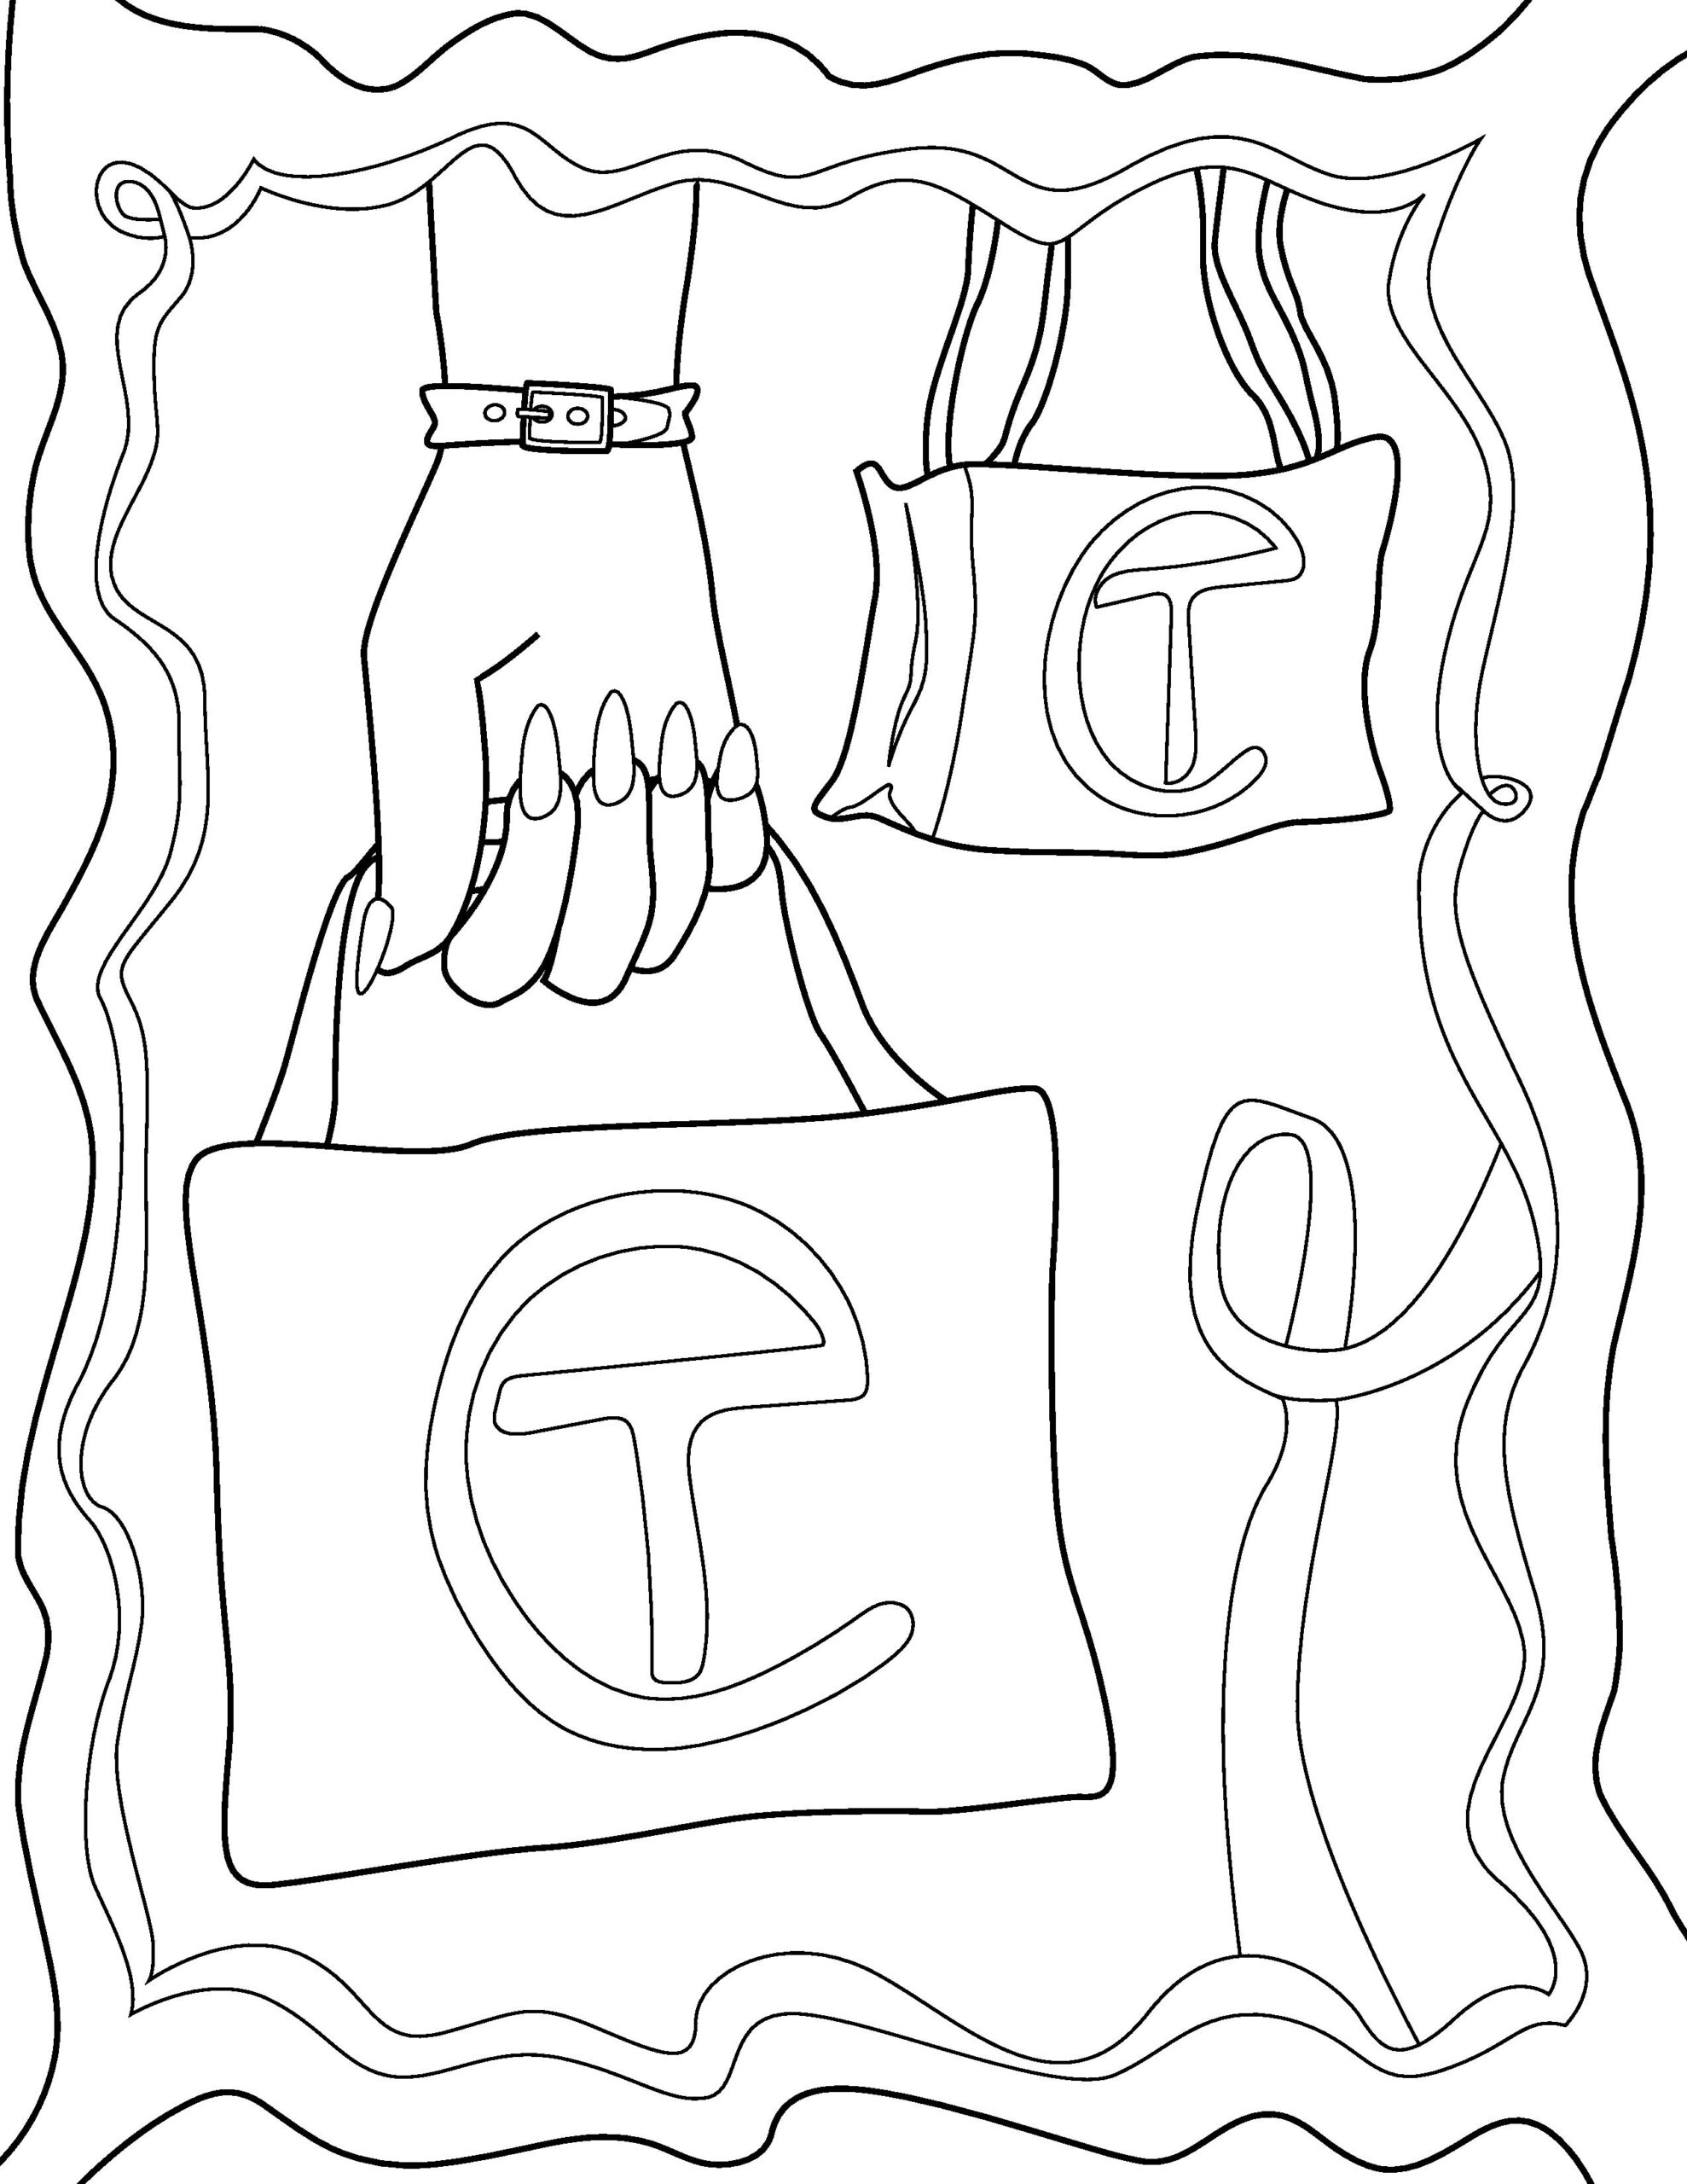 Colouring page illustration of Telfar Shopping Bag, shown twice: once held by a hand wearing a bracelet, once by itself.